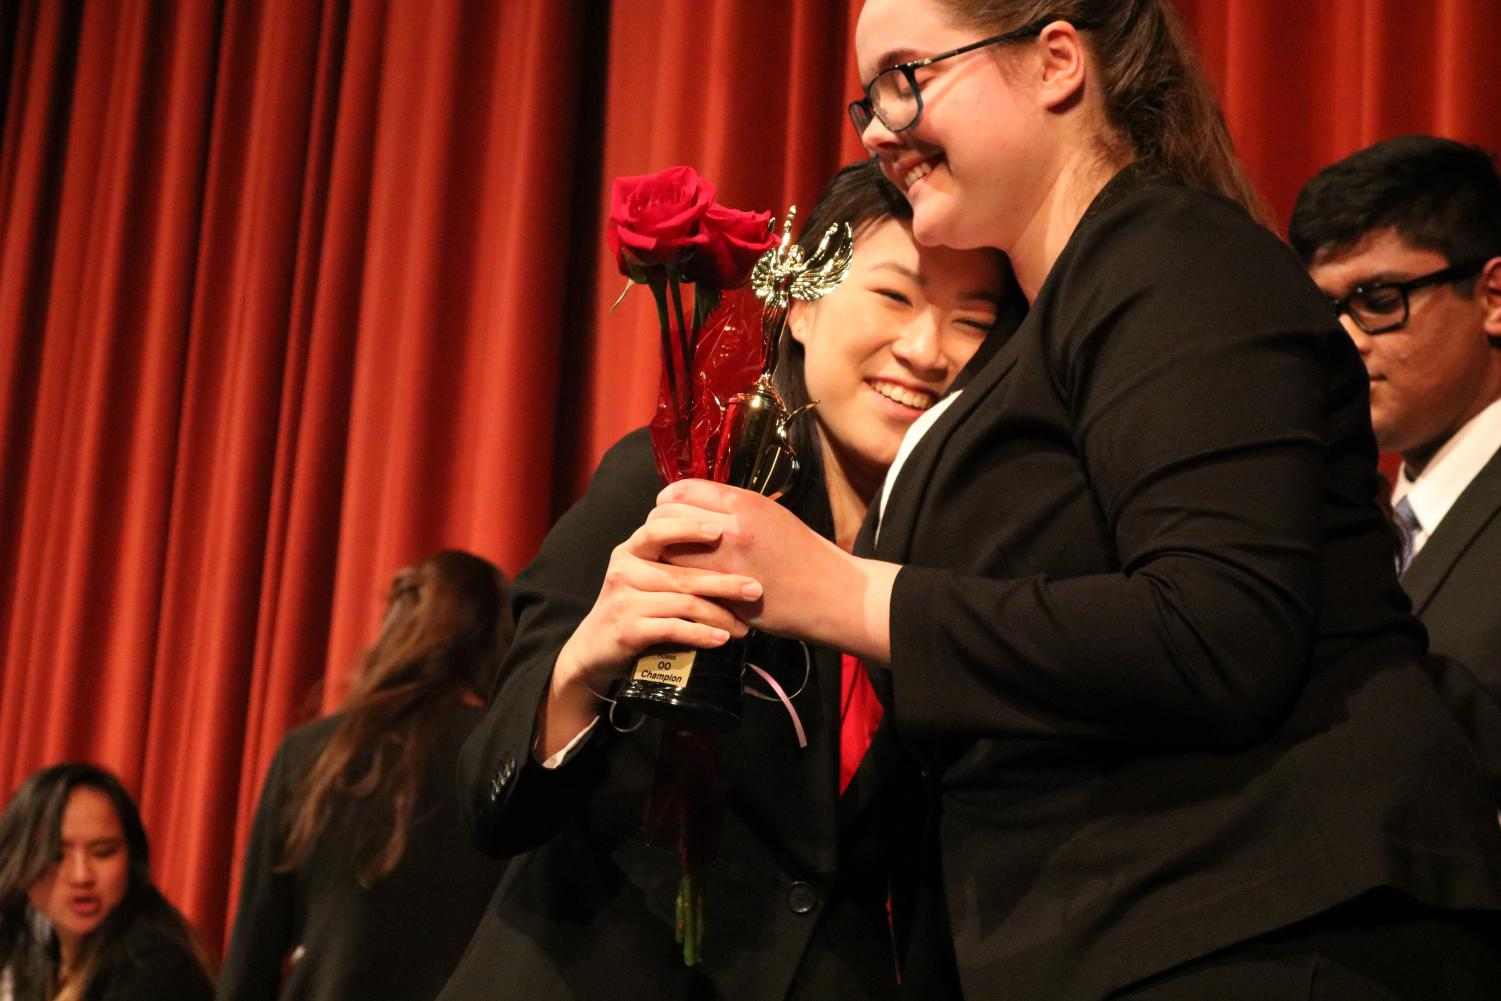 Junior Michelle Kee is presented with an award and rose after winning first place in Original Oratory during the Tournament of Roses on Dec. 8.